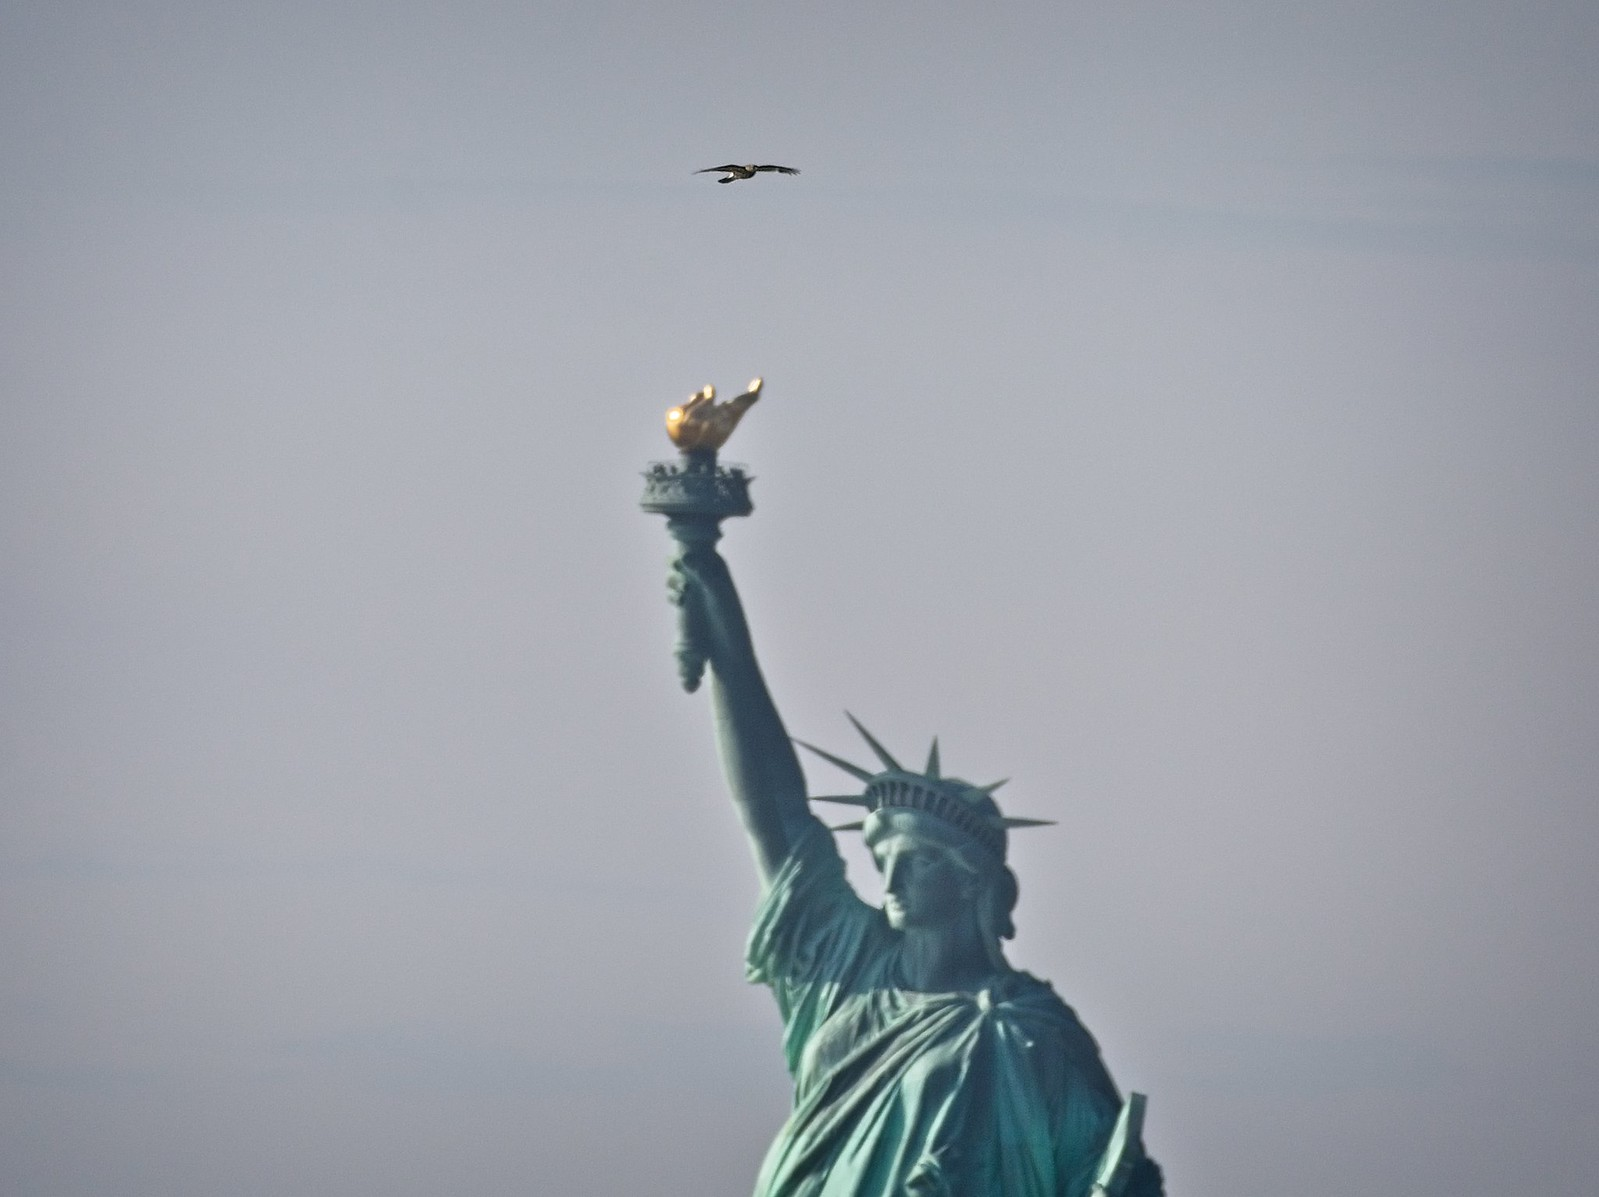 Cooper's hawk over the Statue of Liberty